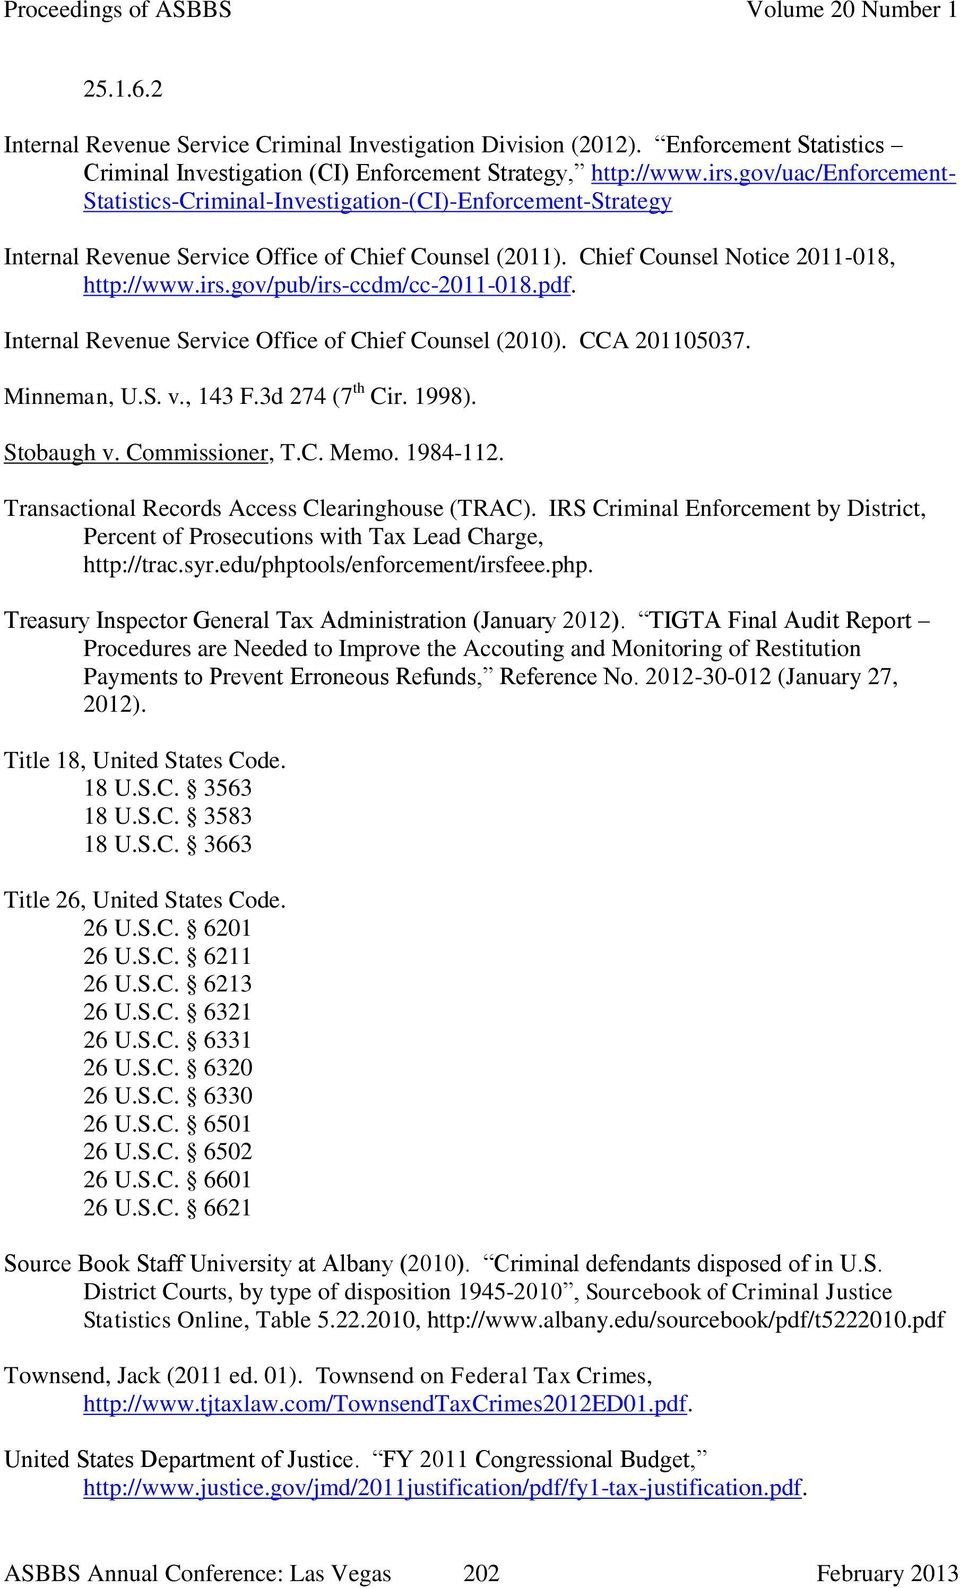 gov/pub/irs-ccdm/cc-2011-018.pdf. Internal Revenue Service Office of Chief Counsel (2010). CCA 201105037. Minneman, U.S. v., 143 F.3d 274 (7 th Cir. 1998). Stobaugh v. Commissioner, T.C. Memo.